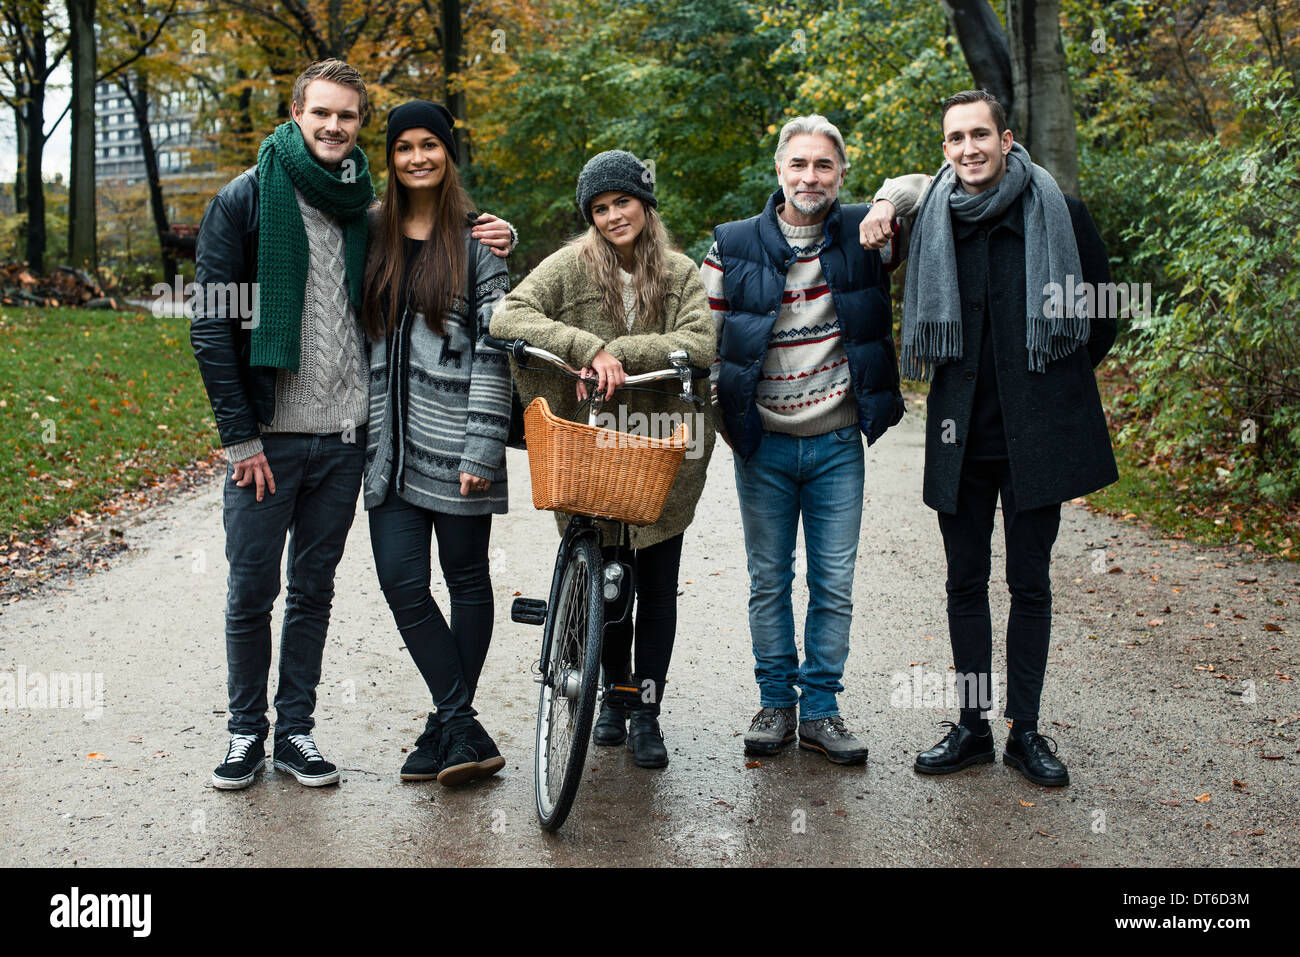 Friends posing with bicycle in woods - Stock Image